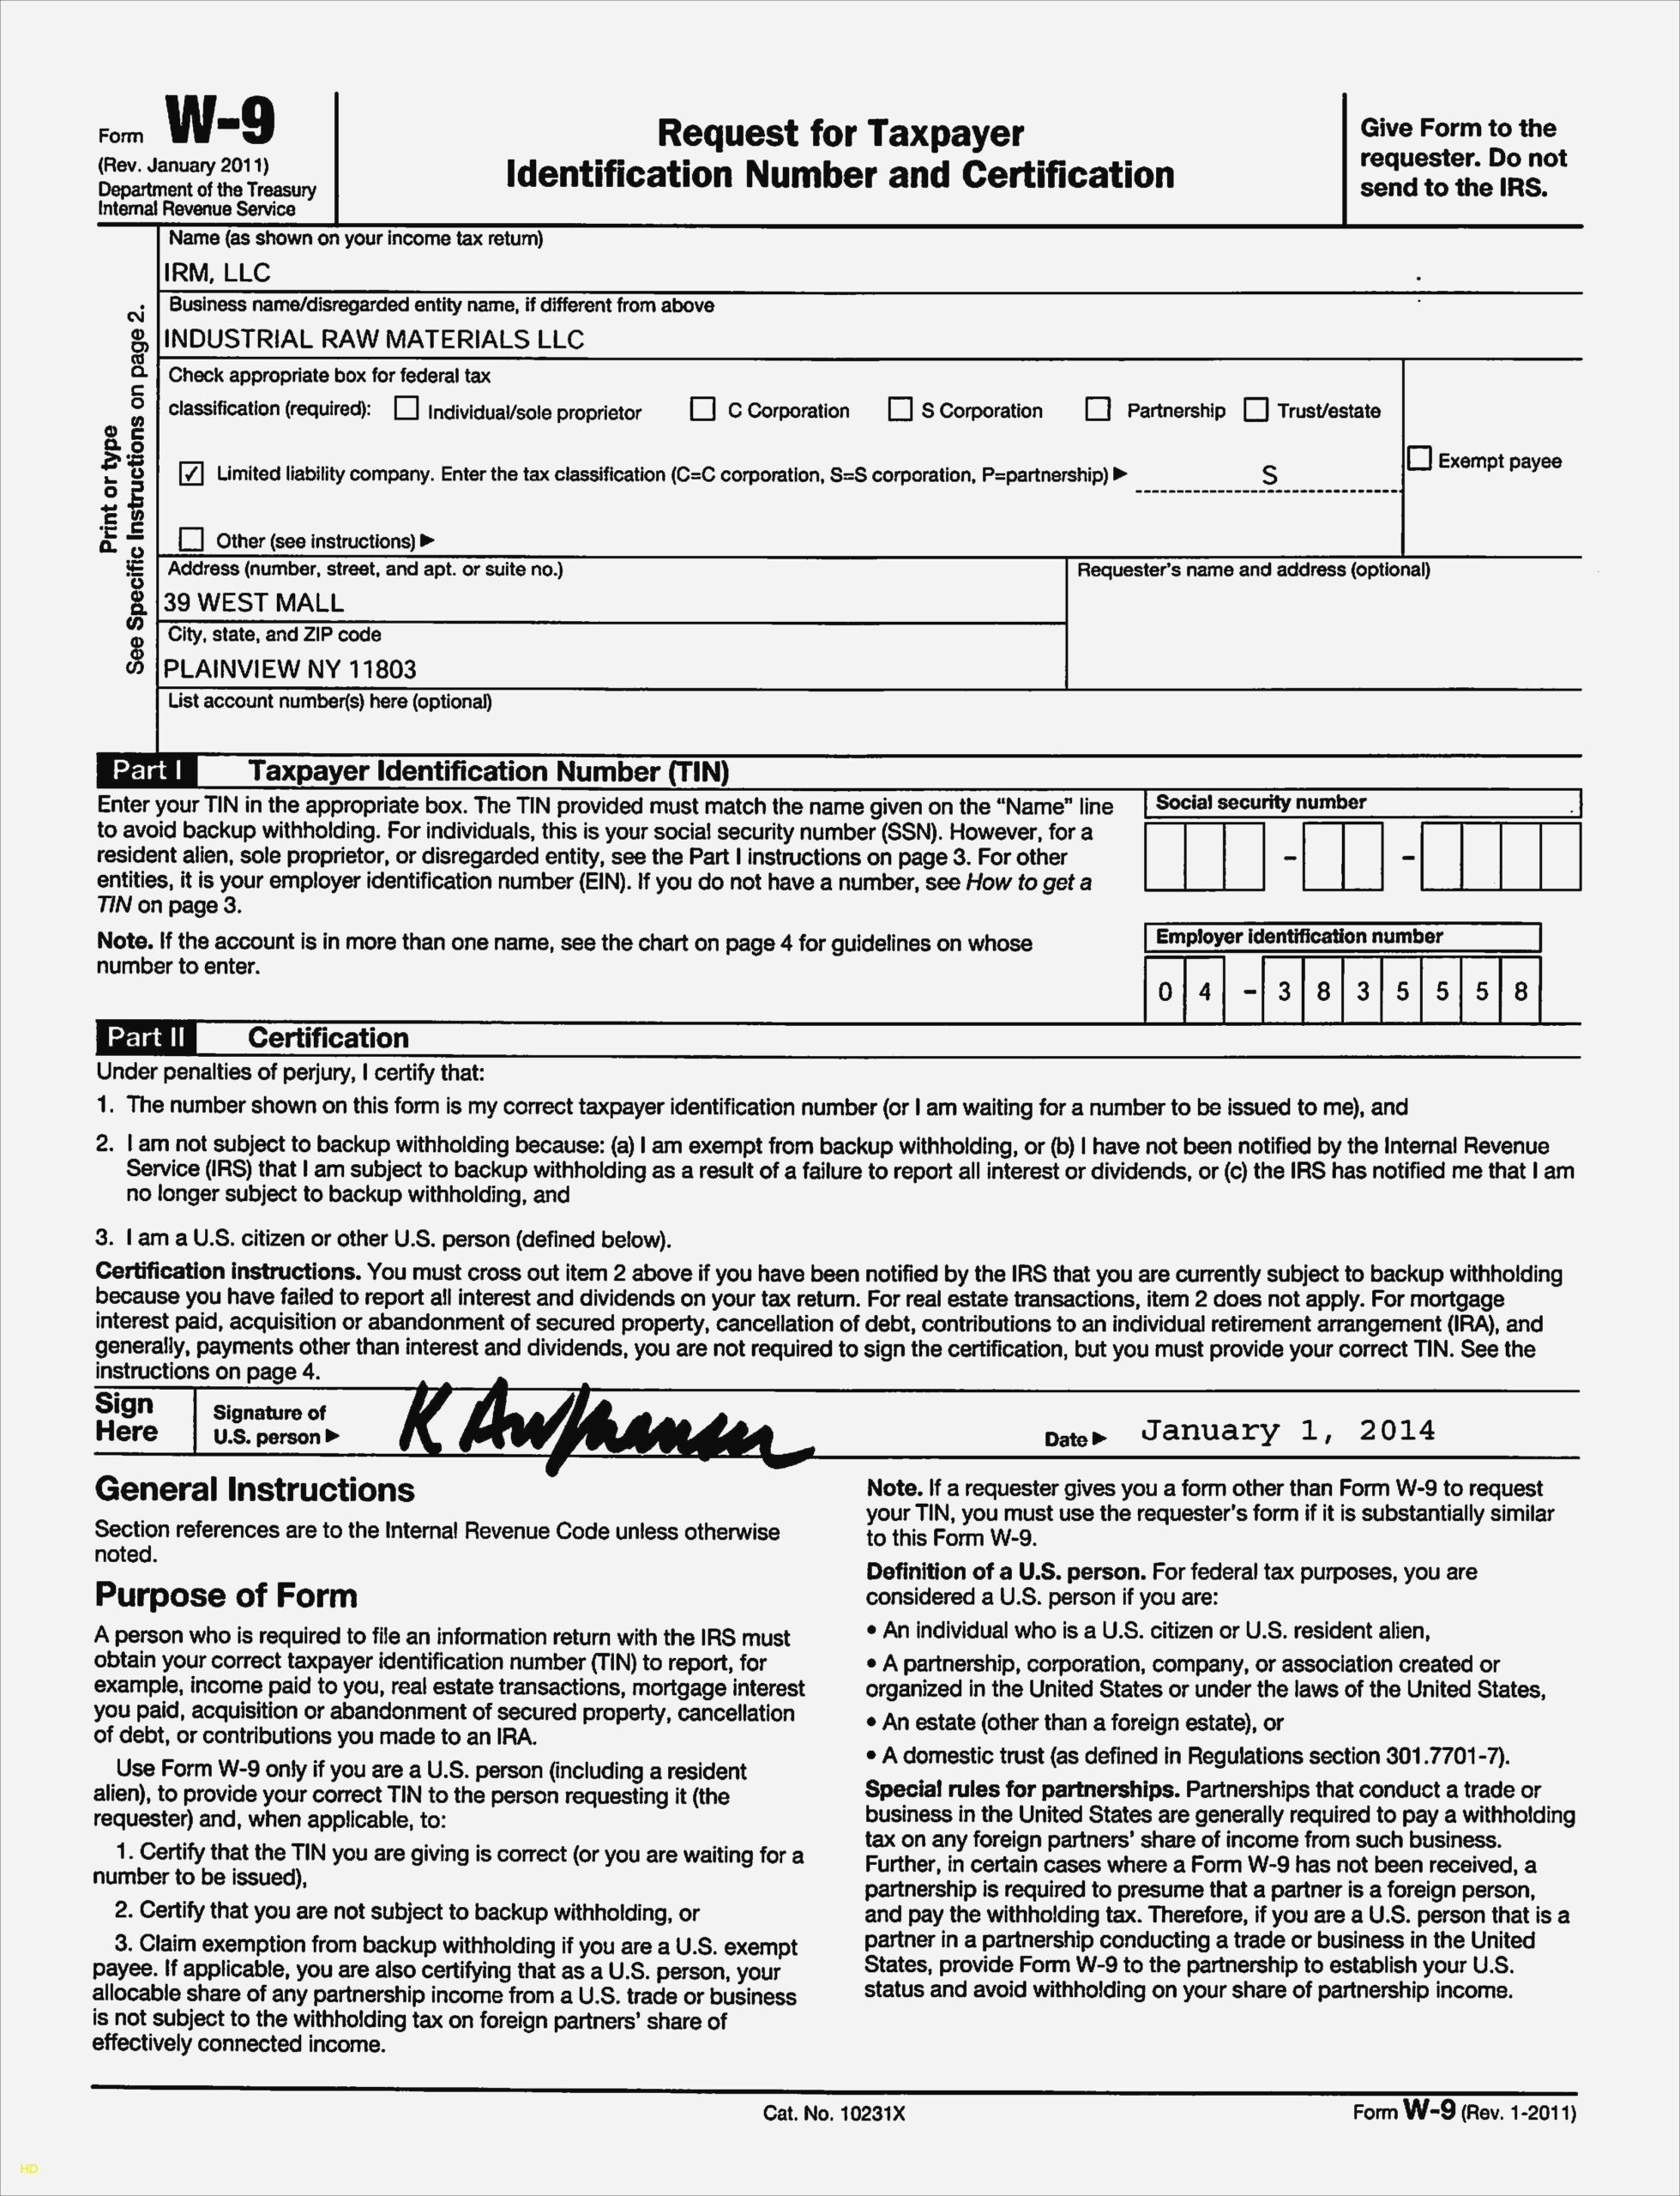 Free Fillable W9 Form W9 Invoice Template Attending W11 pertaining to Free Fillable W 9 Form